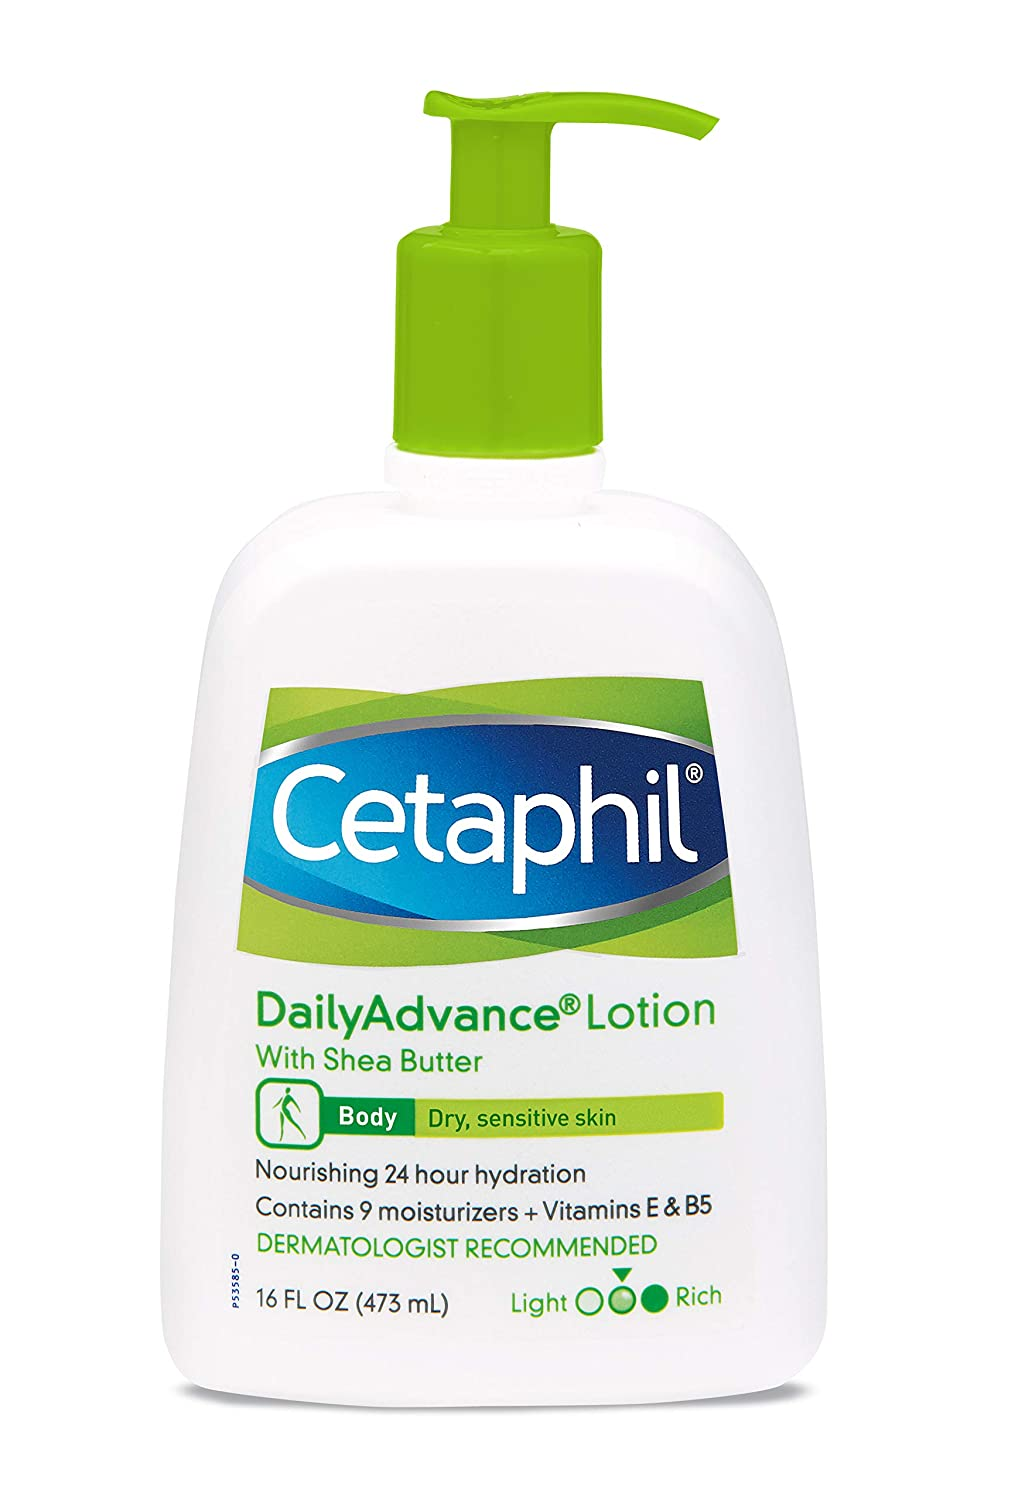 Cetaphil 453, 6 gram Daily Advance Lot – usa GALDERMA430447